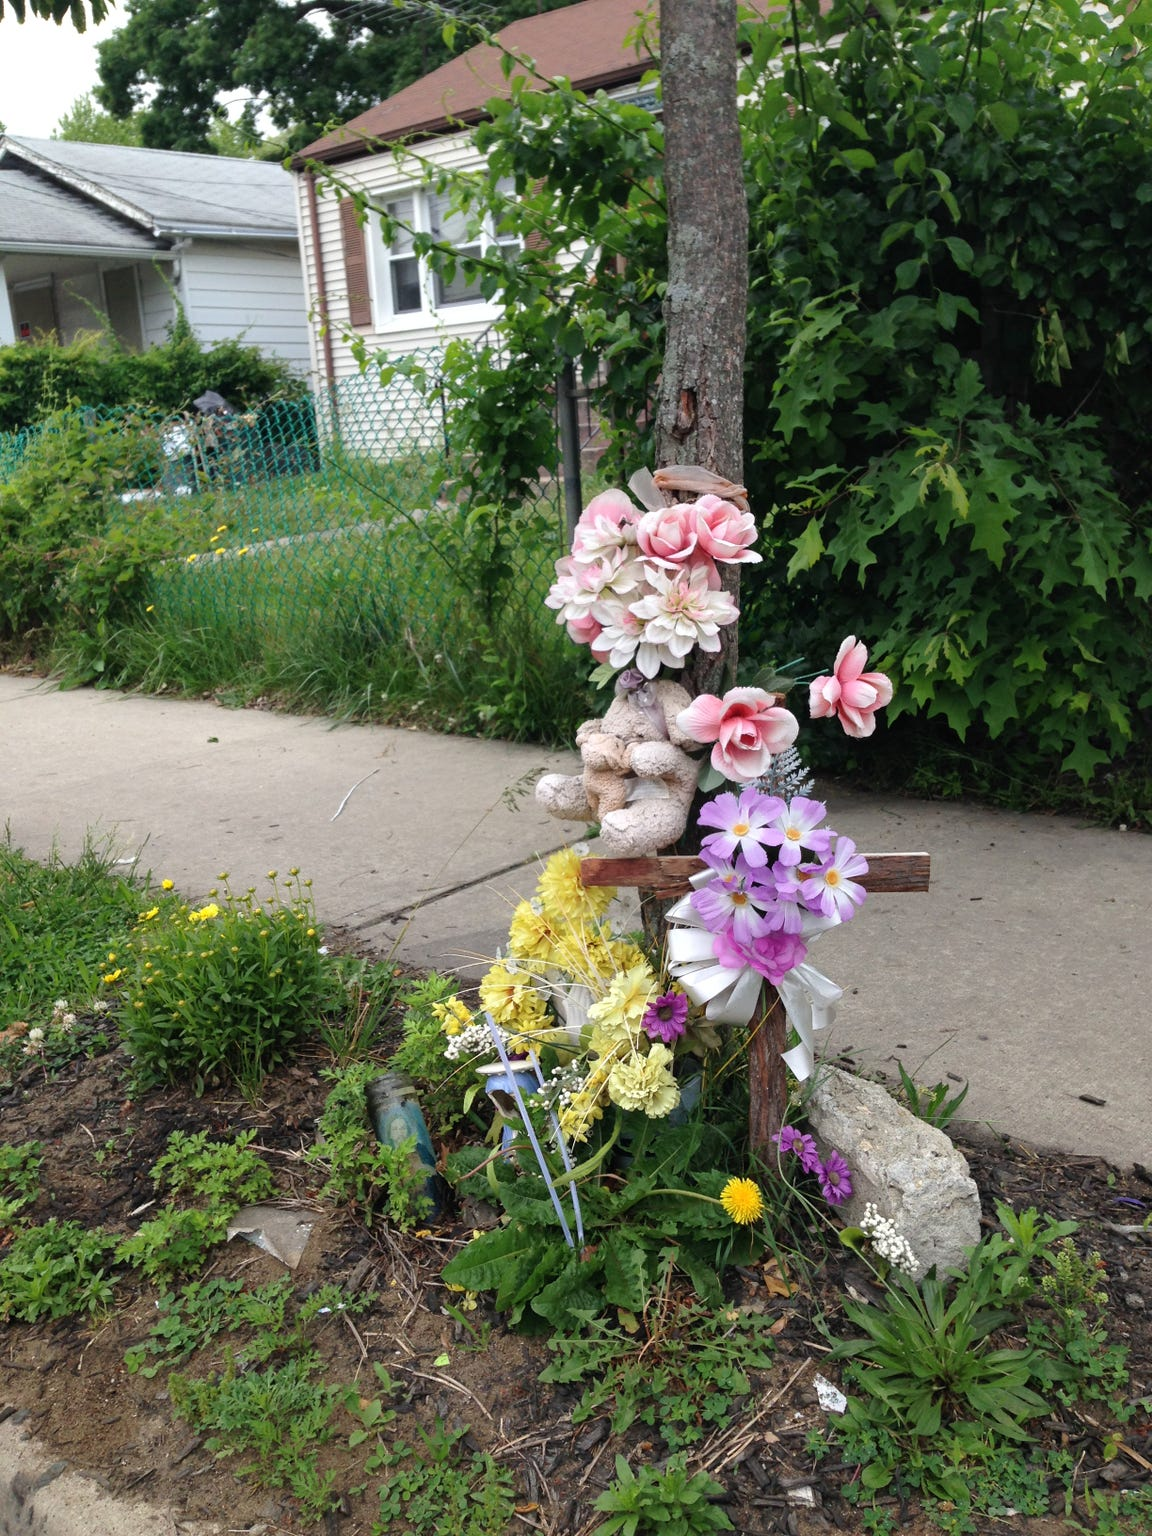 A curbside memorial marks the site where Tamara Wilson-Seidle